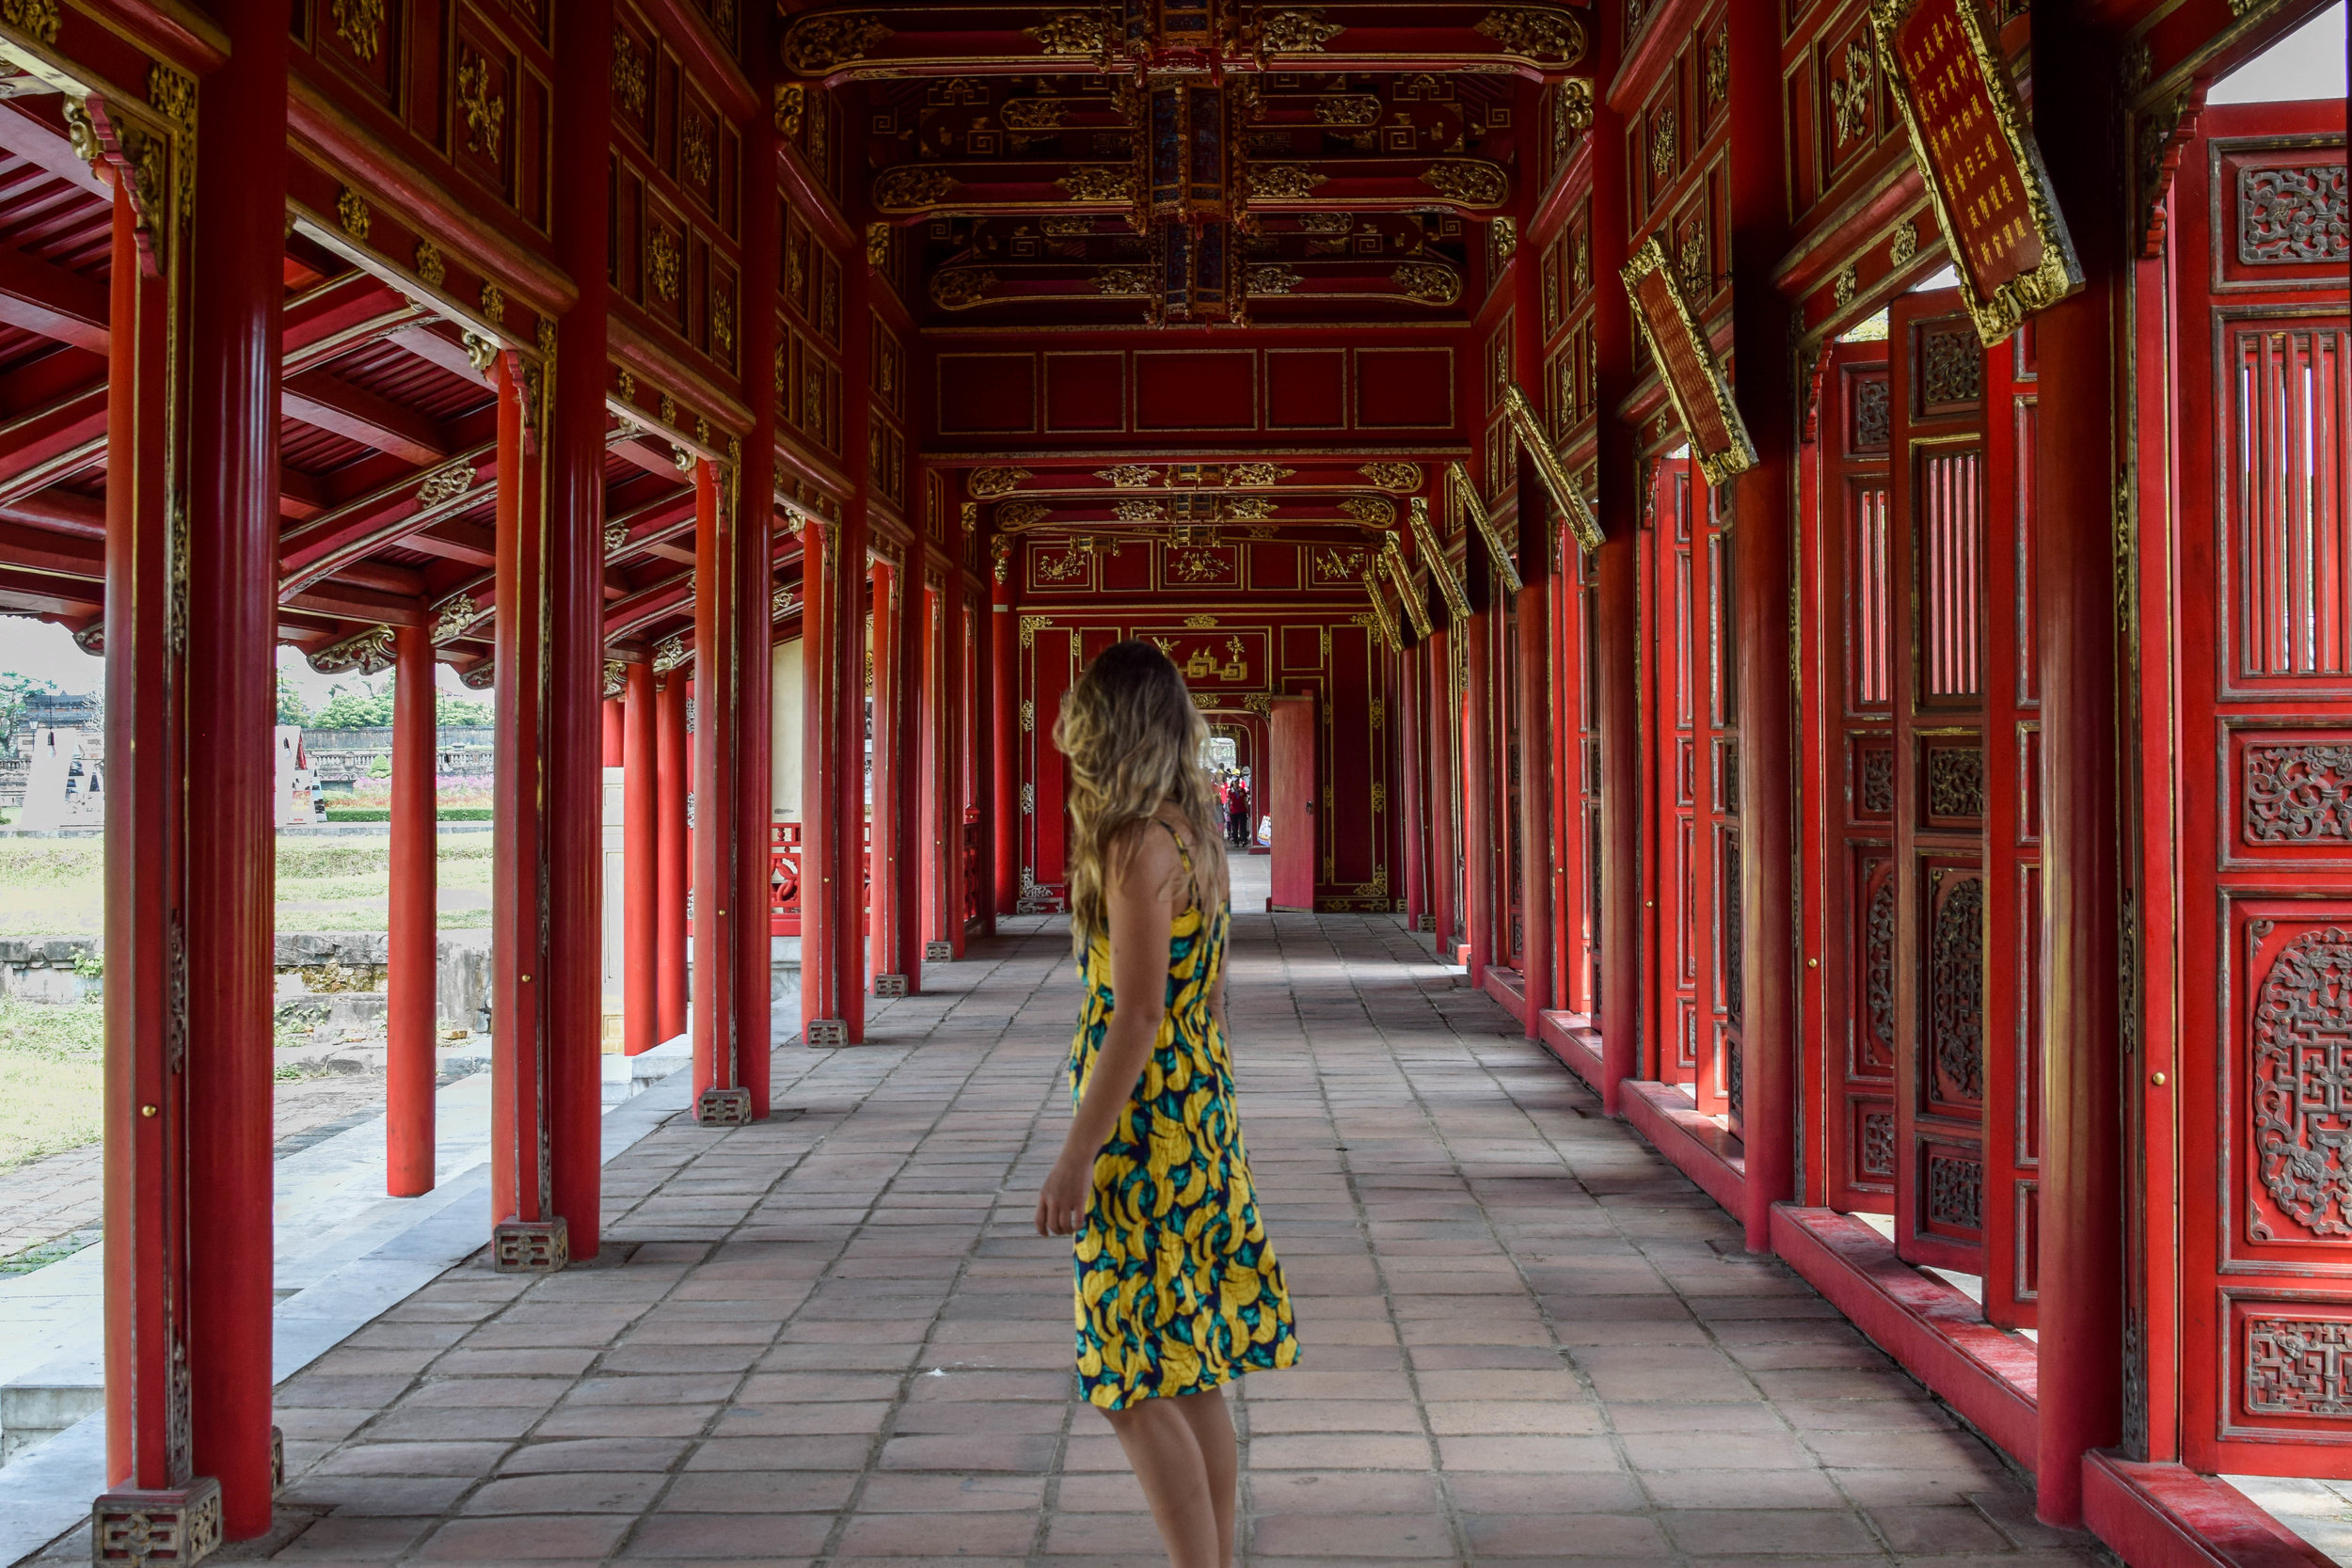 Inside the Imperial Citadel. Yes, that is a banana dress.